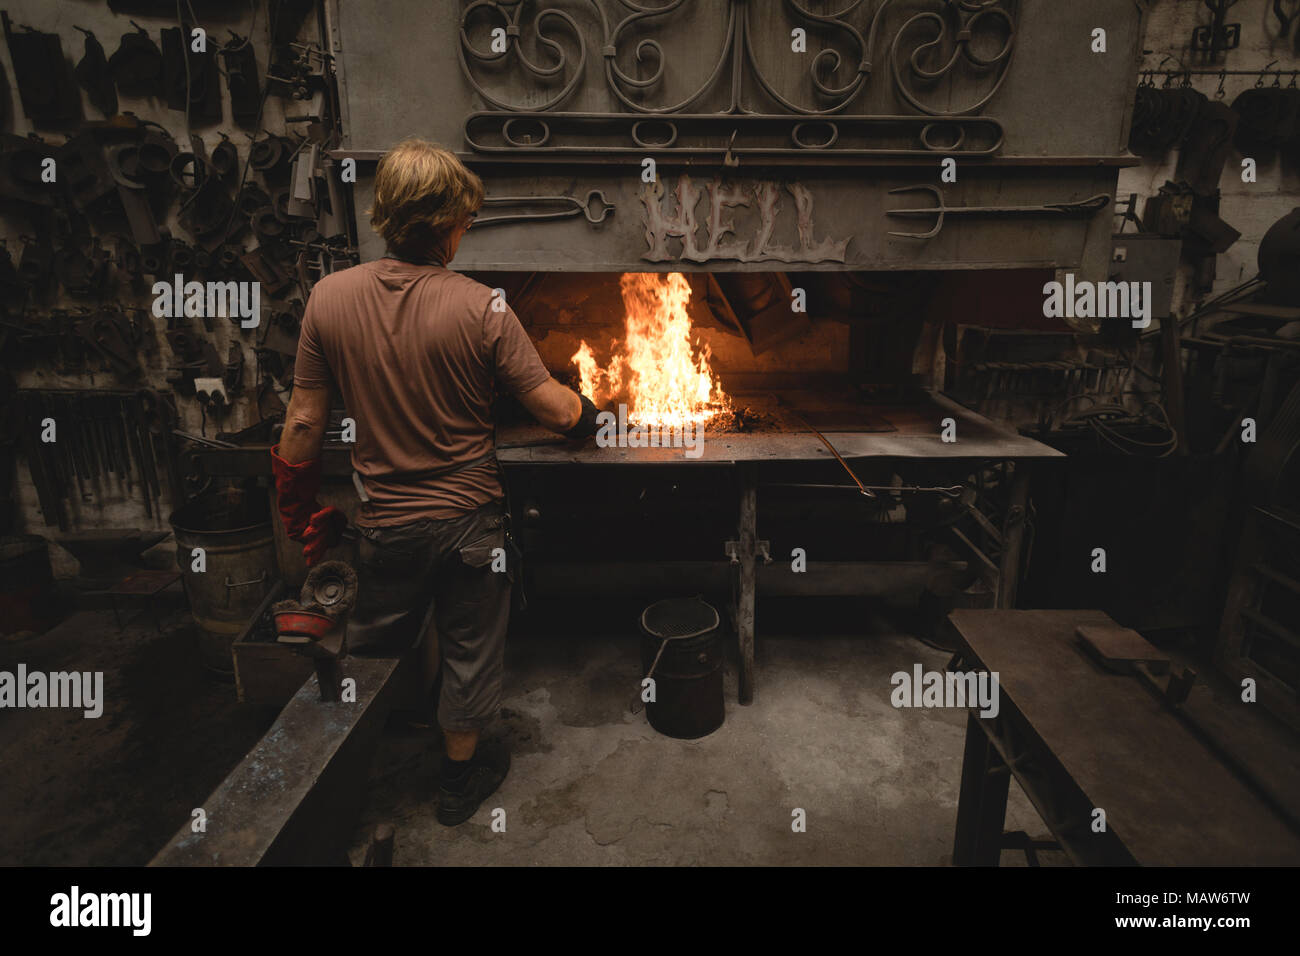 Blacksmith heating metal rod in fire - Stock Image